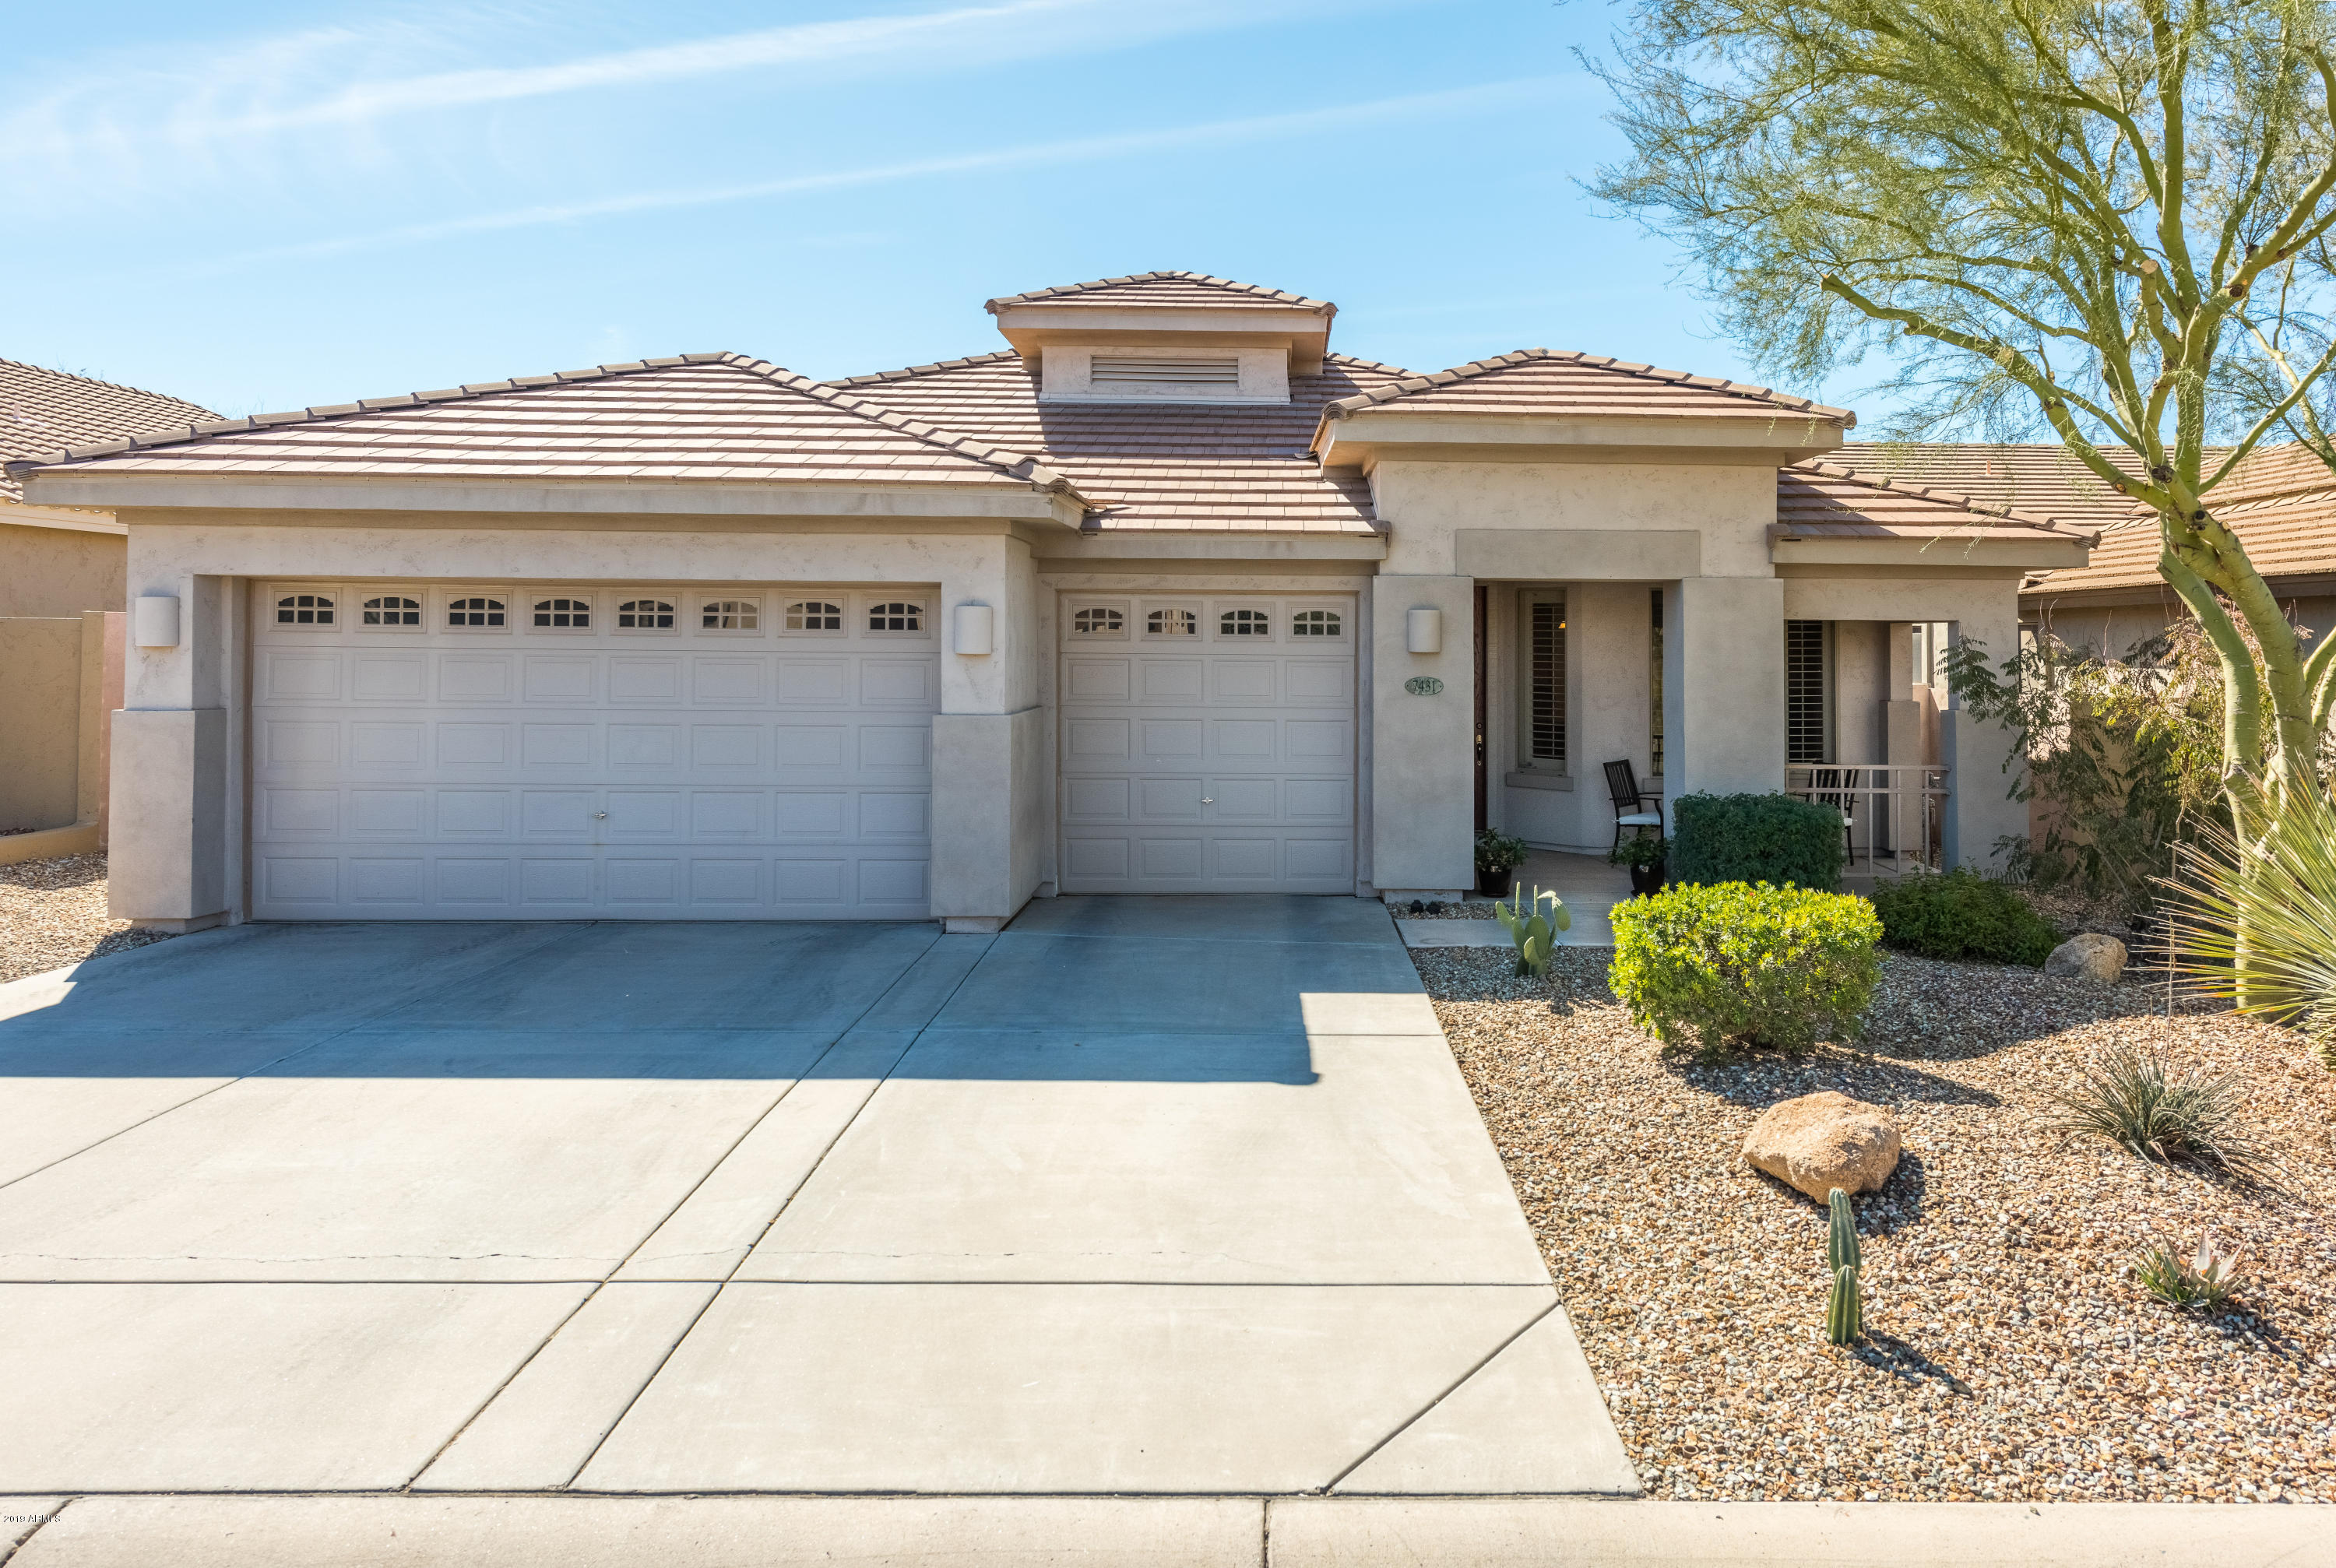 Photo of 7431 E NORA Street, Mesa, AZ 85207